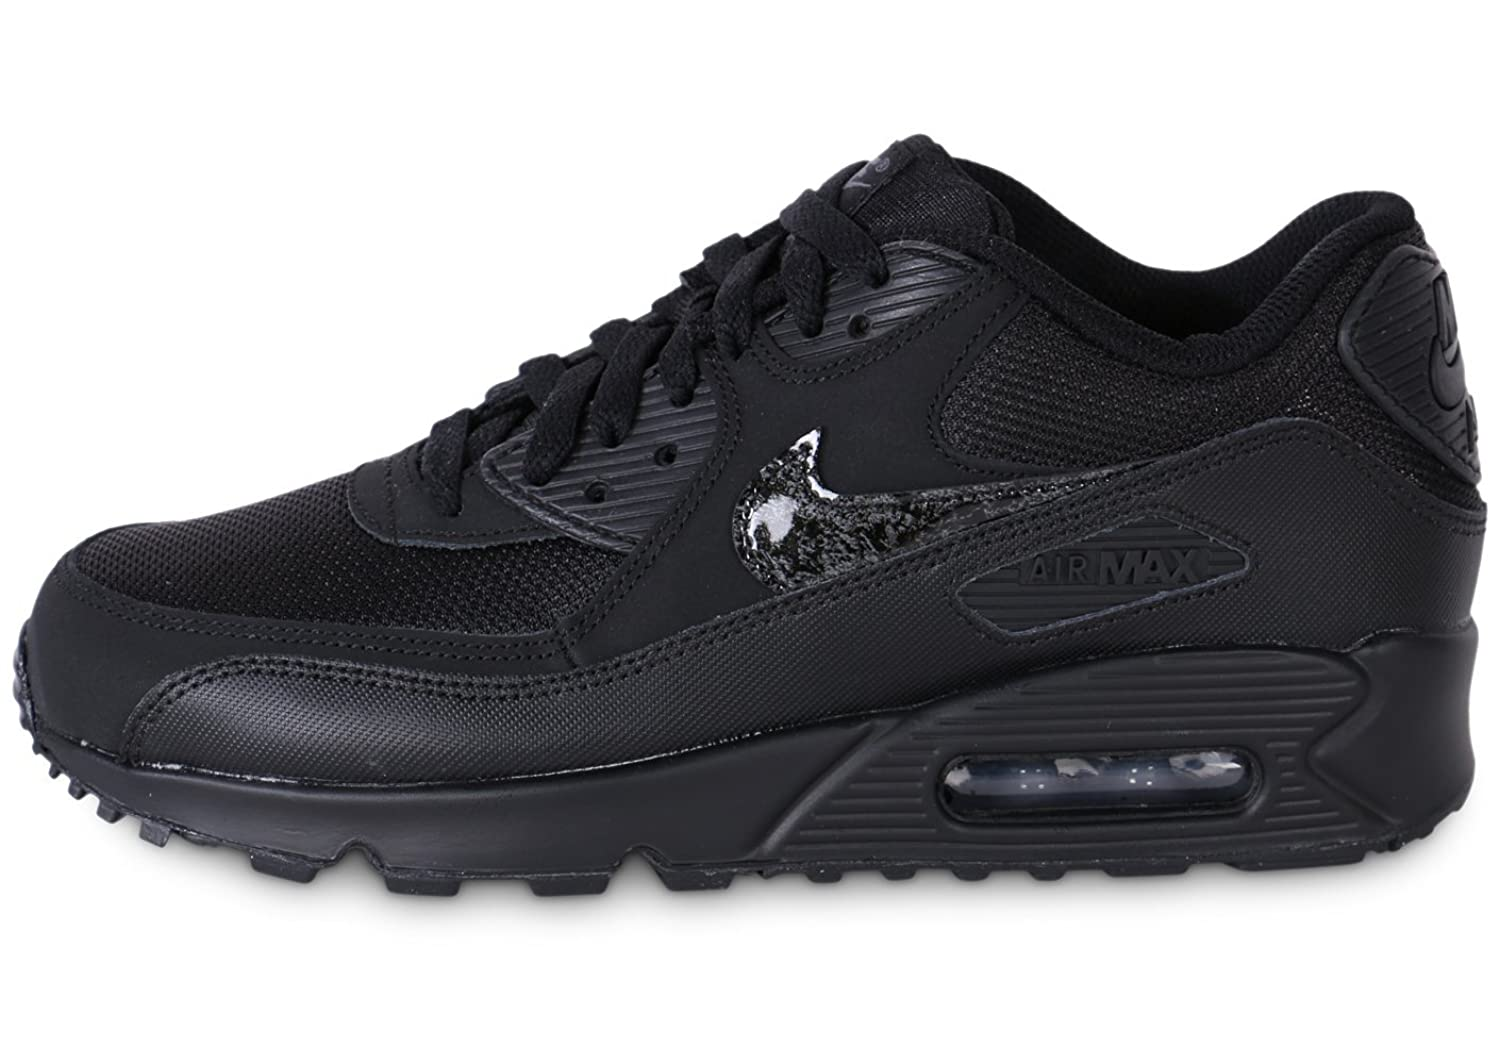 Nike AIR MAX 90 MESH (GS) boys fashion-sneakers 724824-001 nike air max 90 женские купить срочно